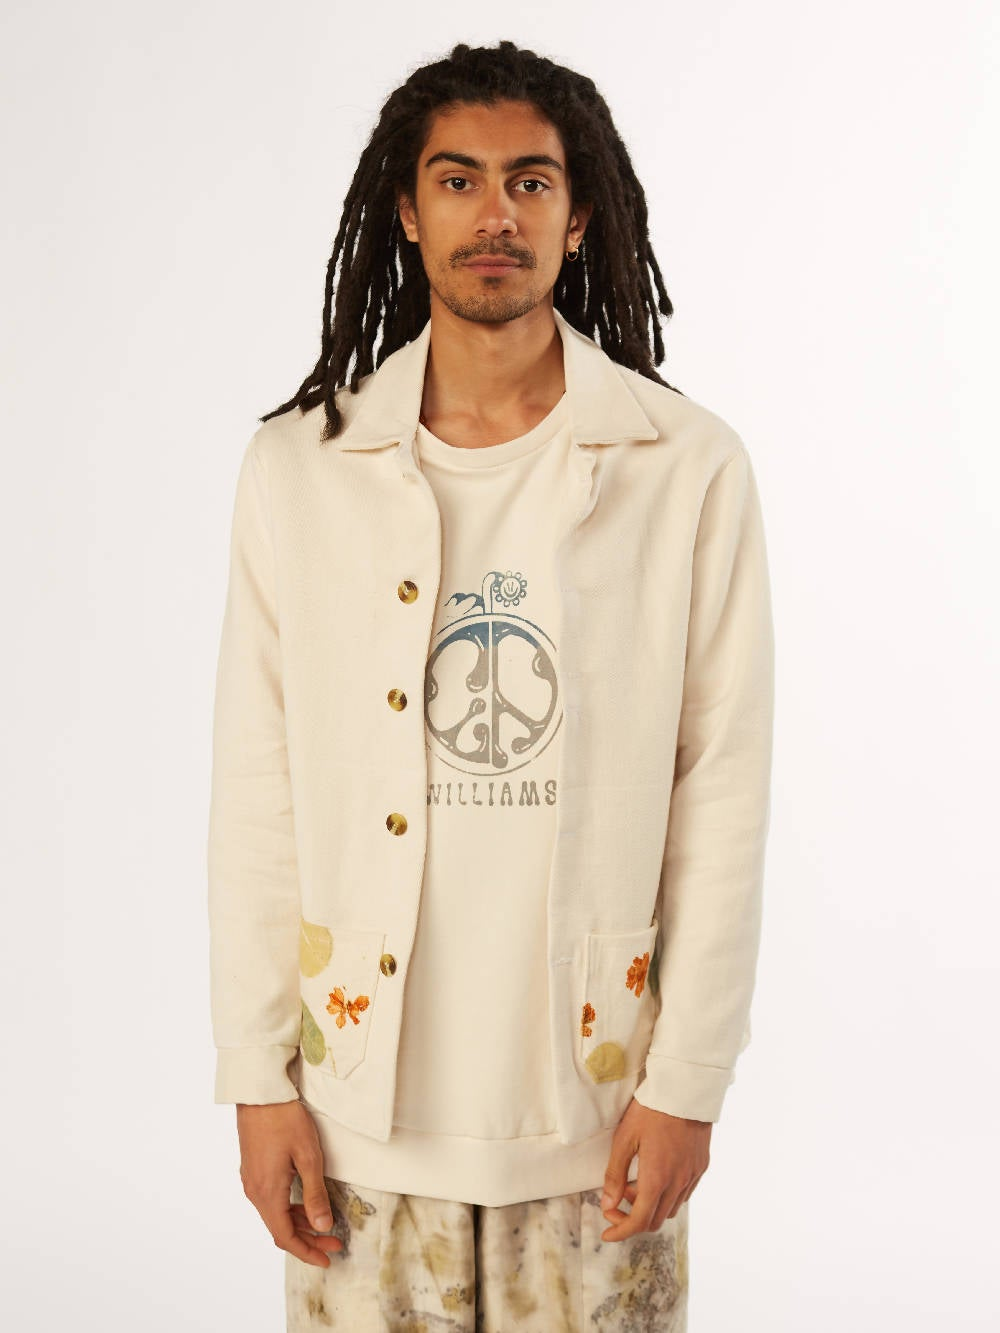 E A Williams Naturally dyed Unisex Jacket